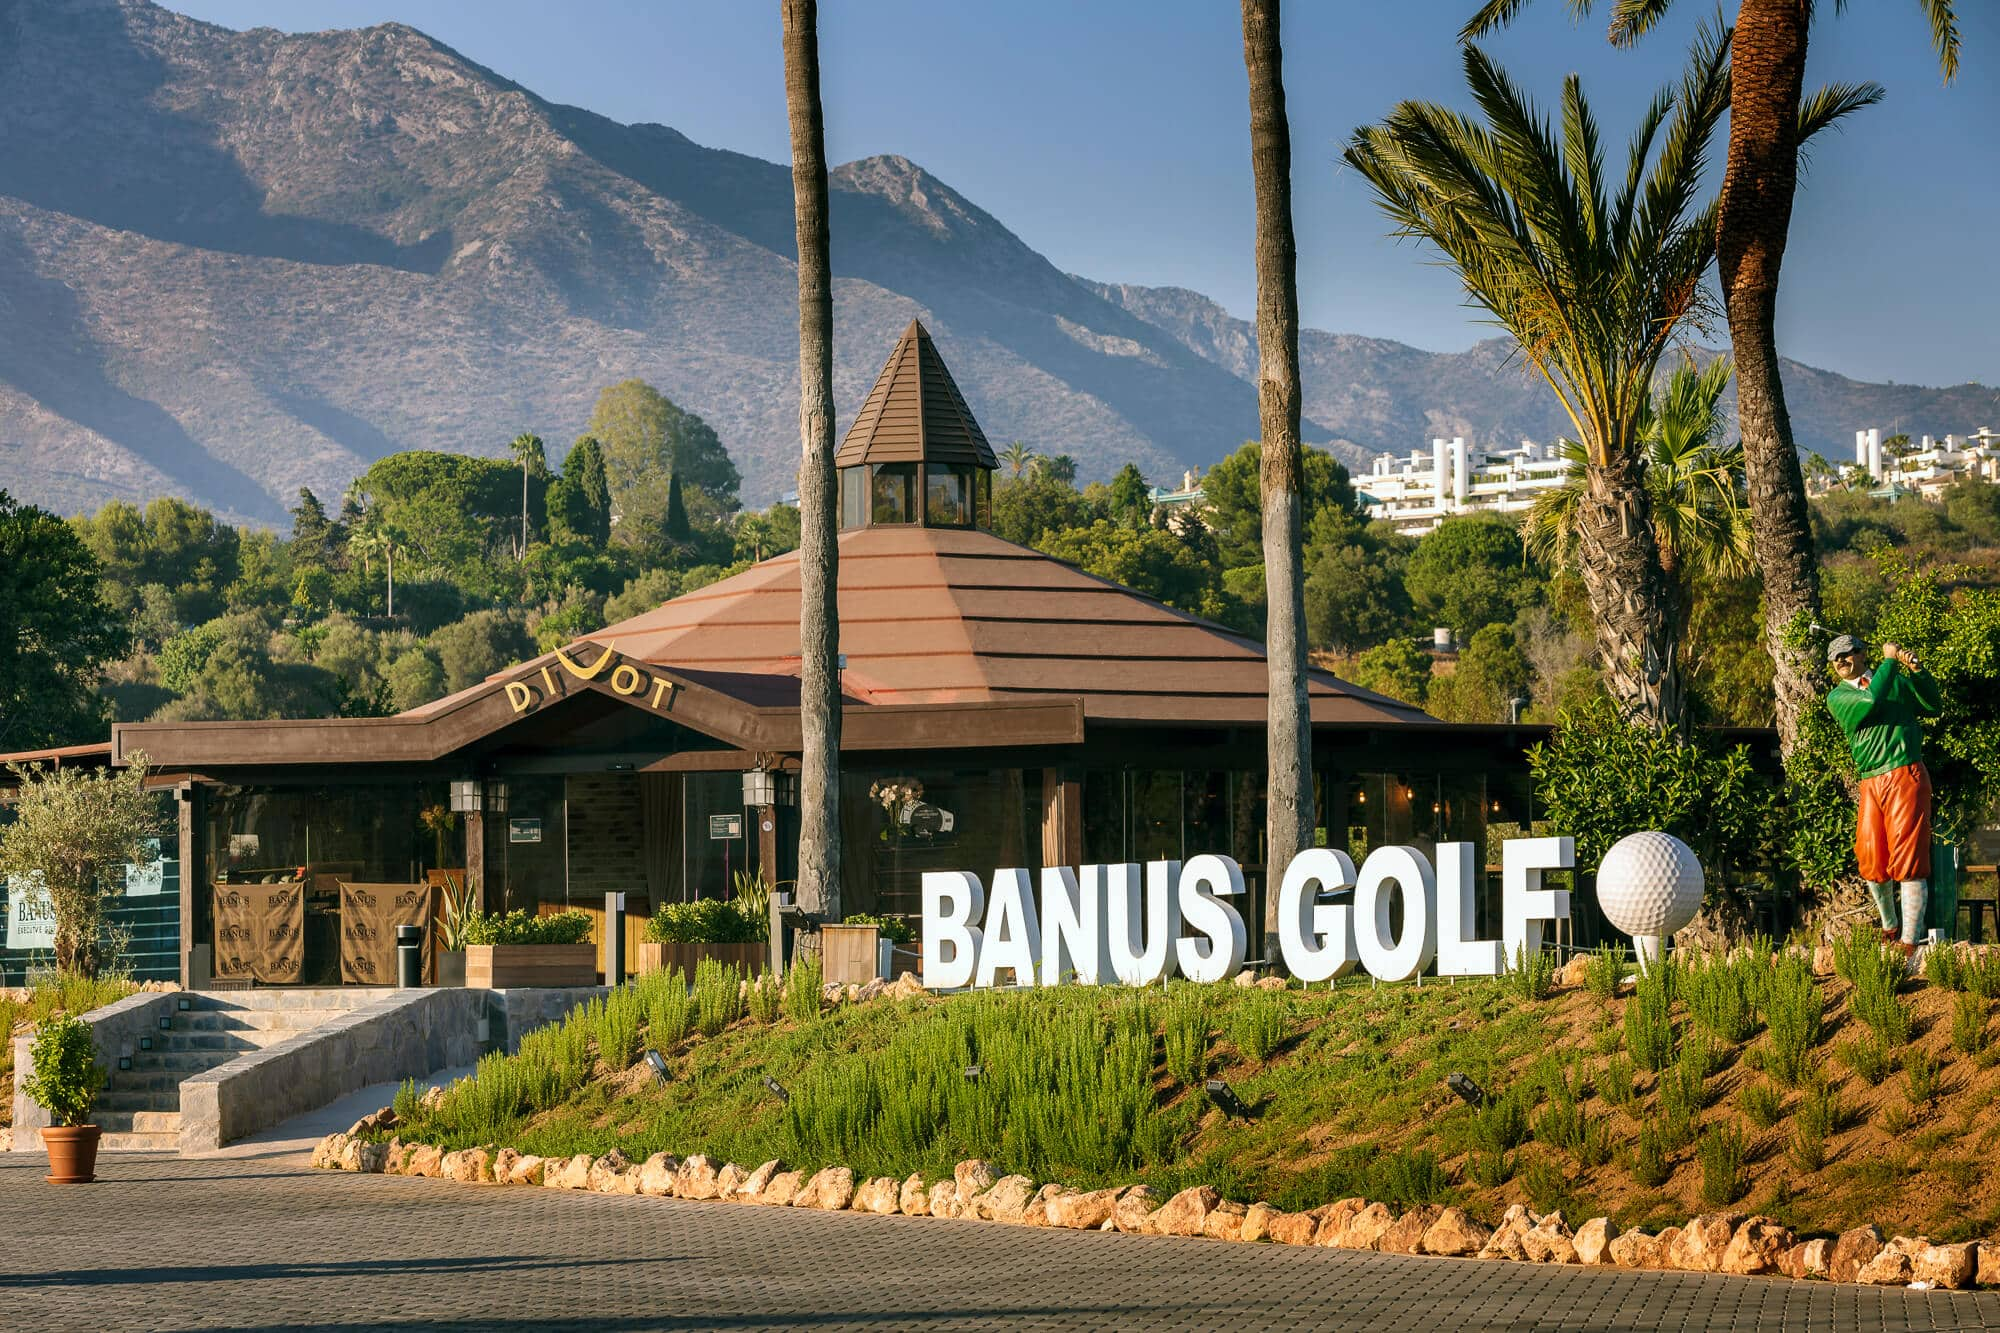 Banús Executive Golf